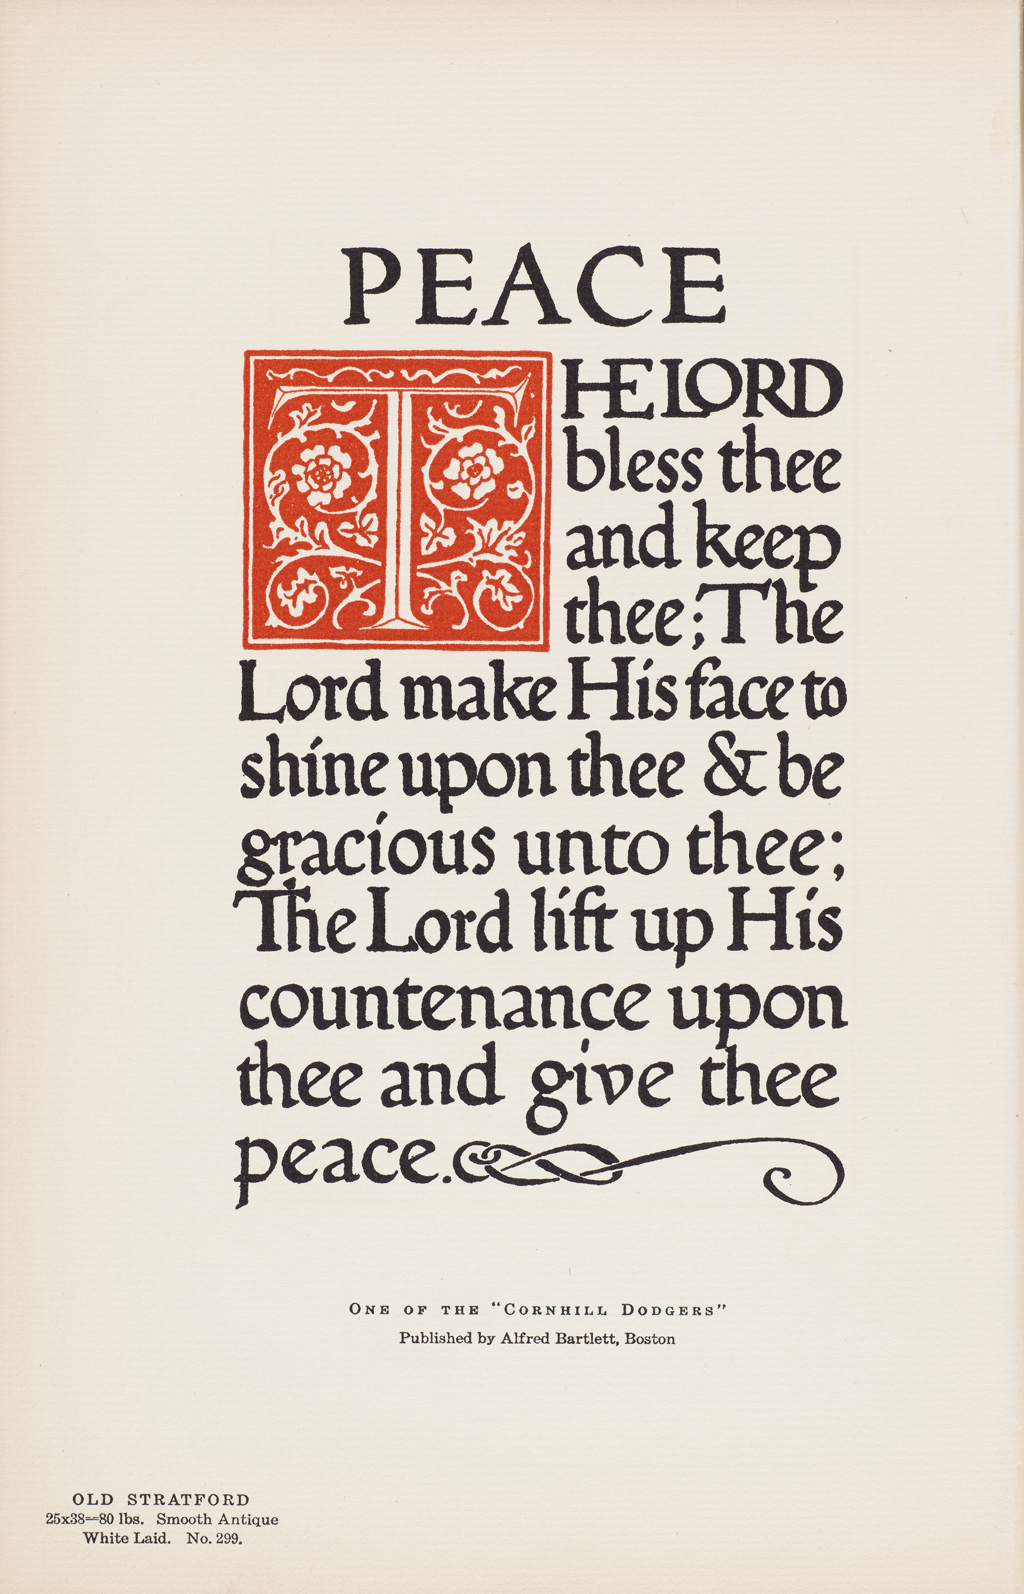 """Peace,"" a Cornhill dodger from The Strathmore Quality Book of Deckle Edge Papers (Baltimore: The Munder-Thomsen Press, 1906). Calligraphy and design by W.A. Dwiggins."